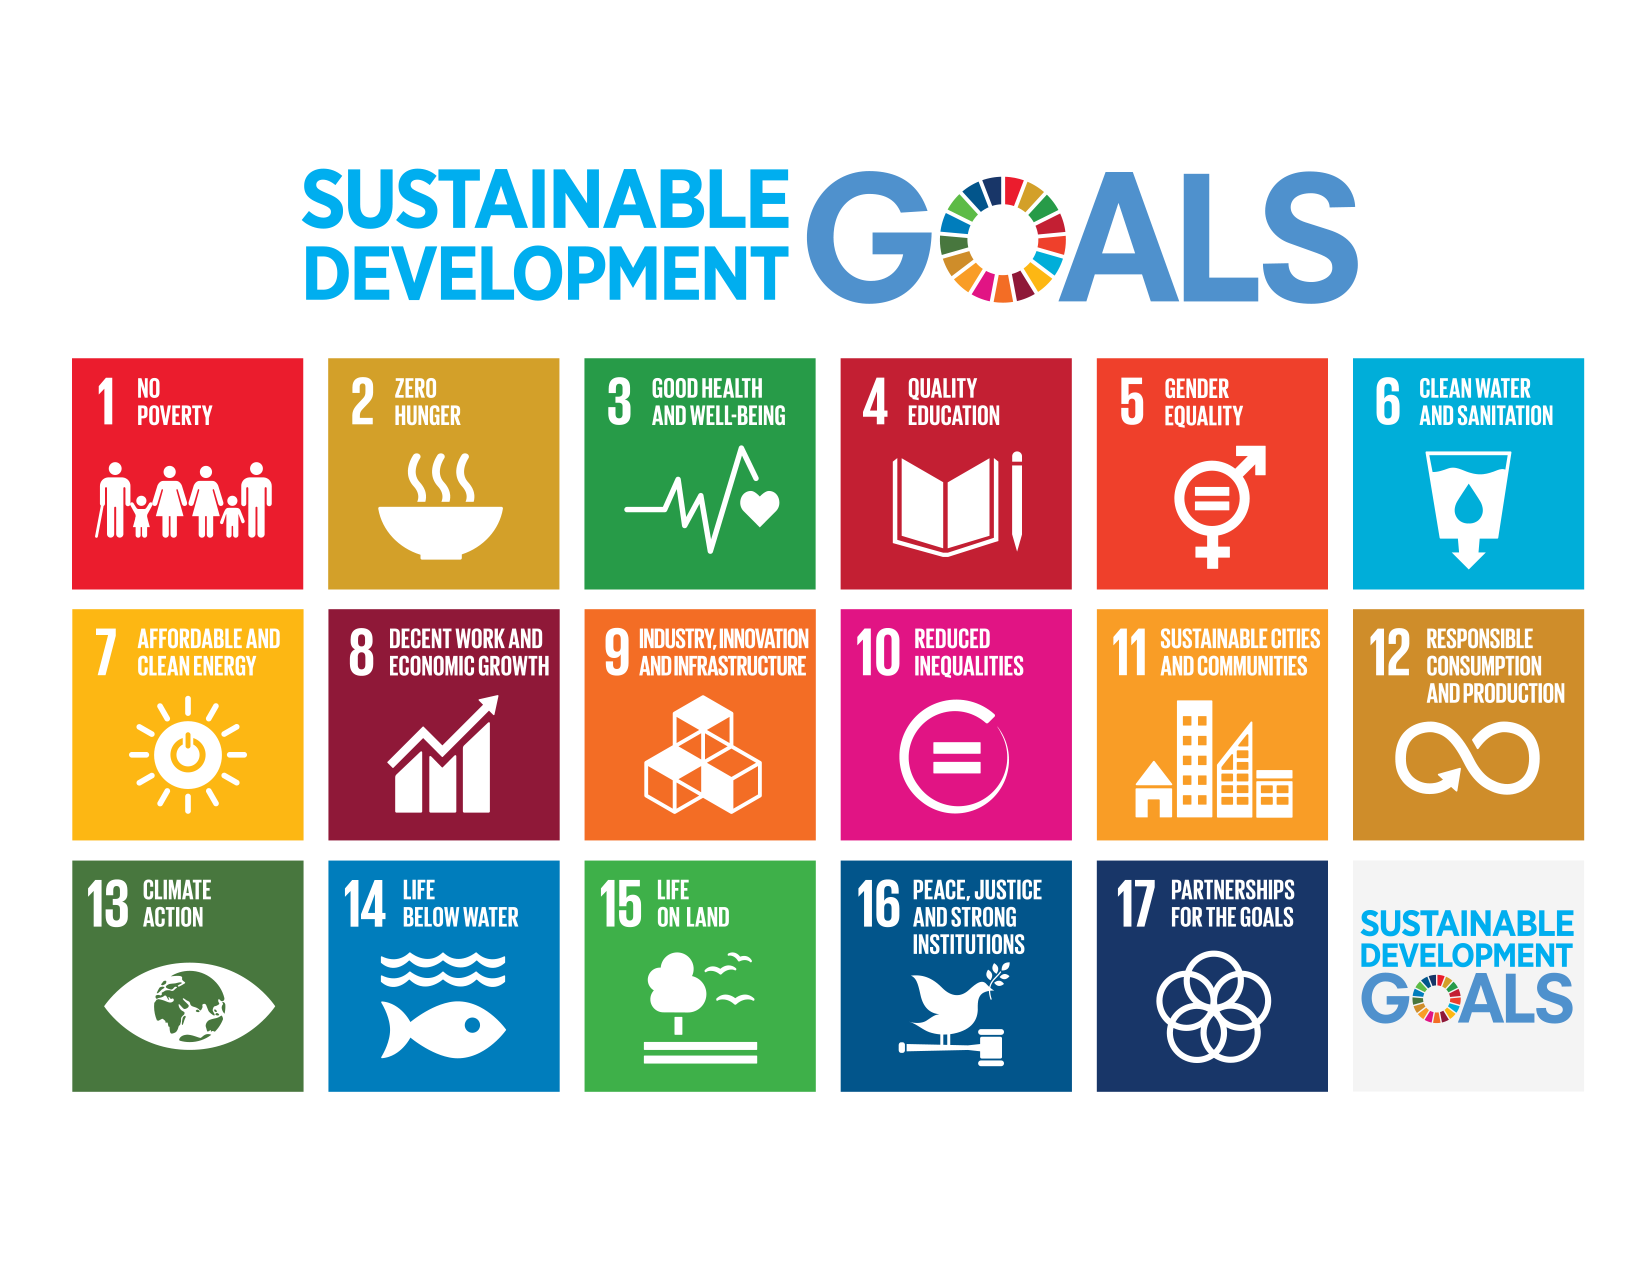 SDG 17 Goals to Transform Our World